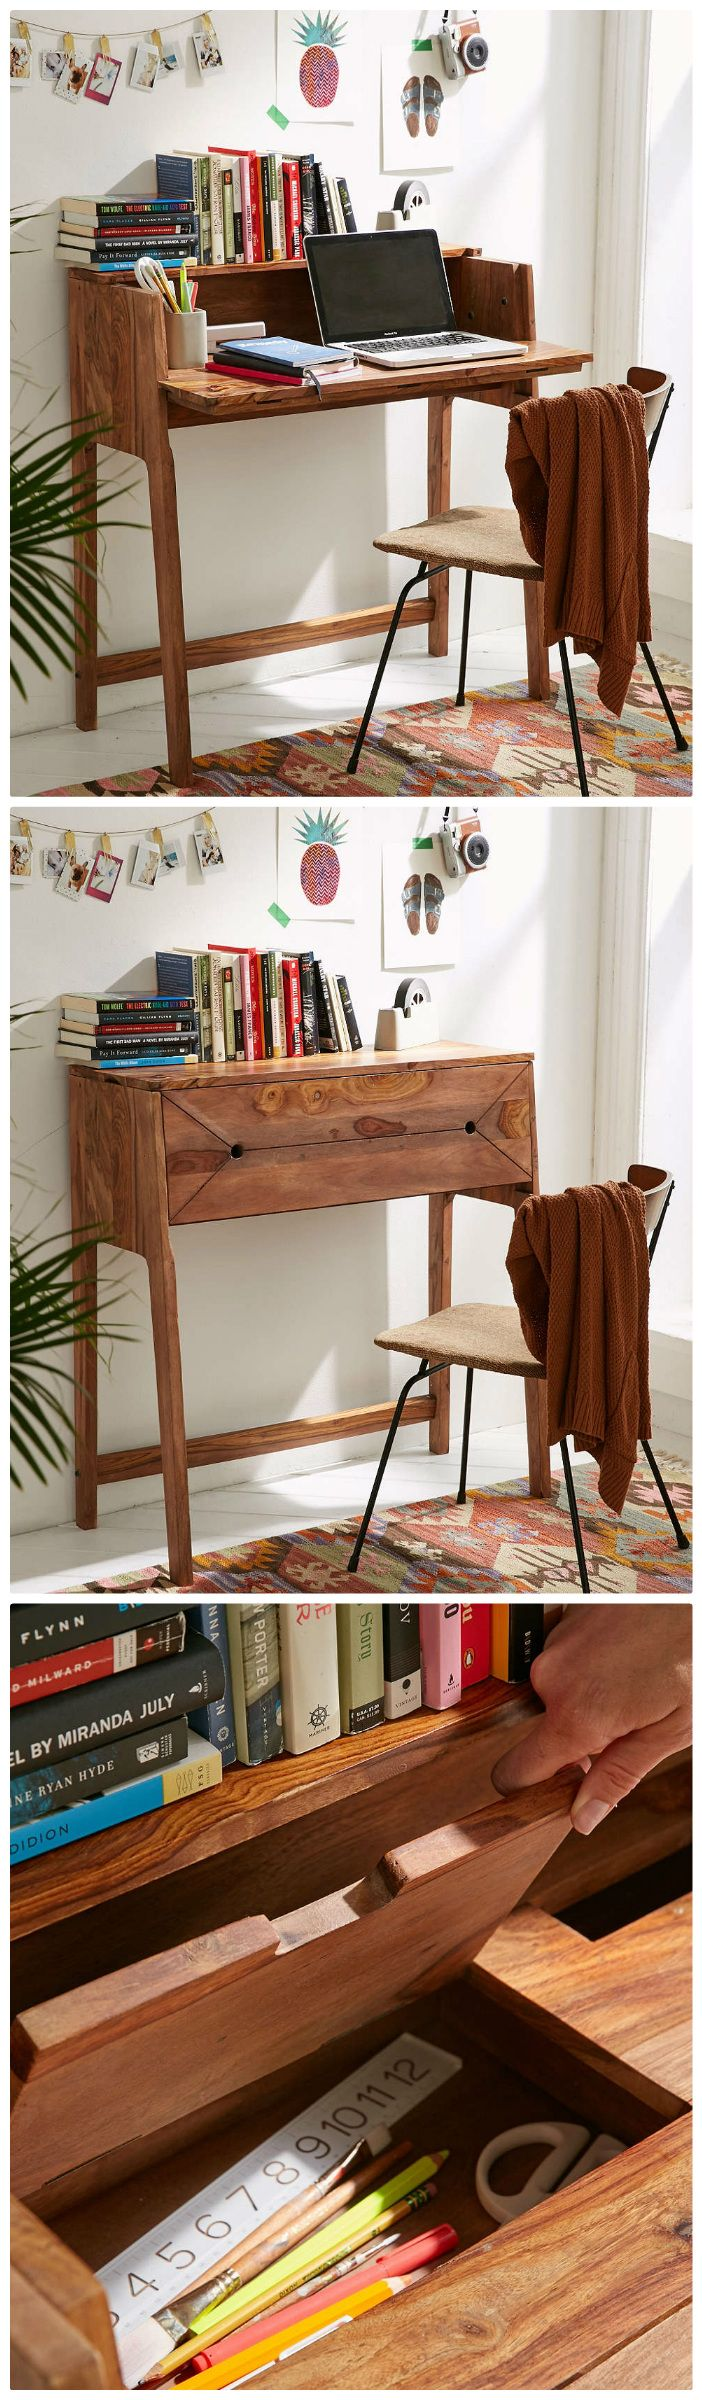 Ten space-saving desks that work great in small living spaces